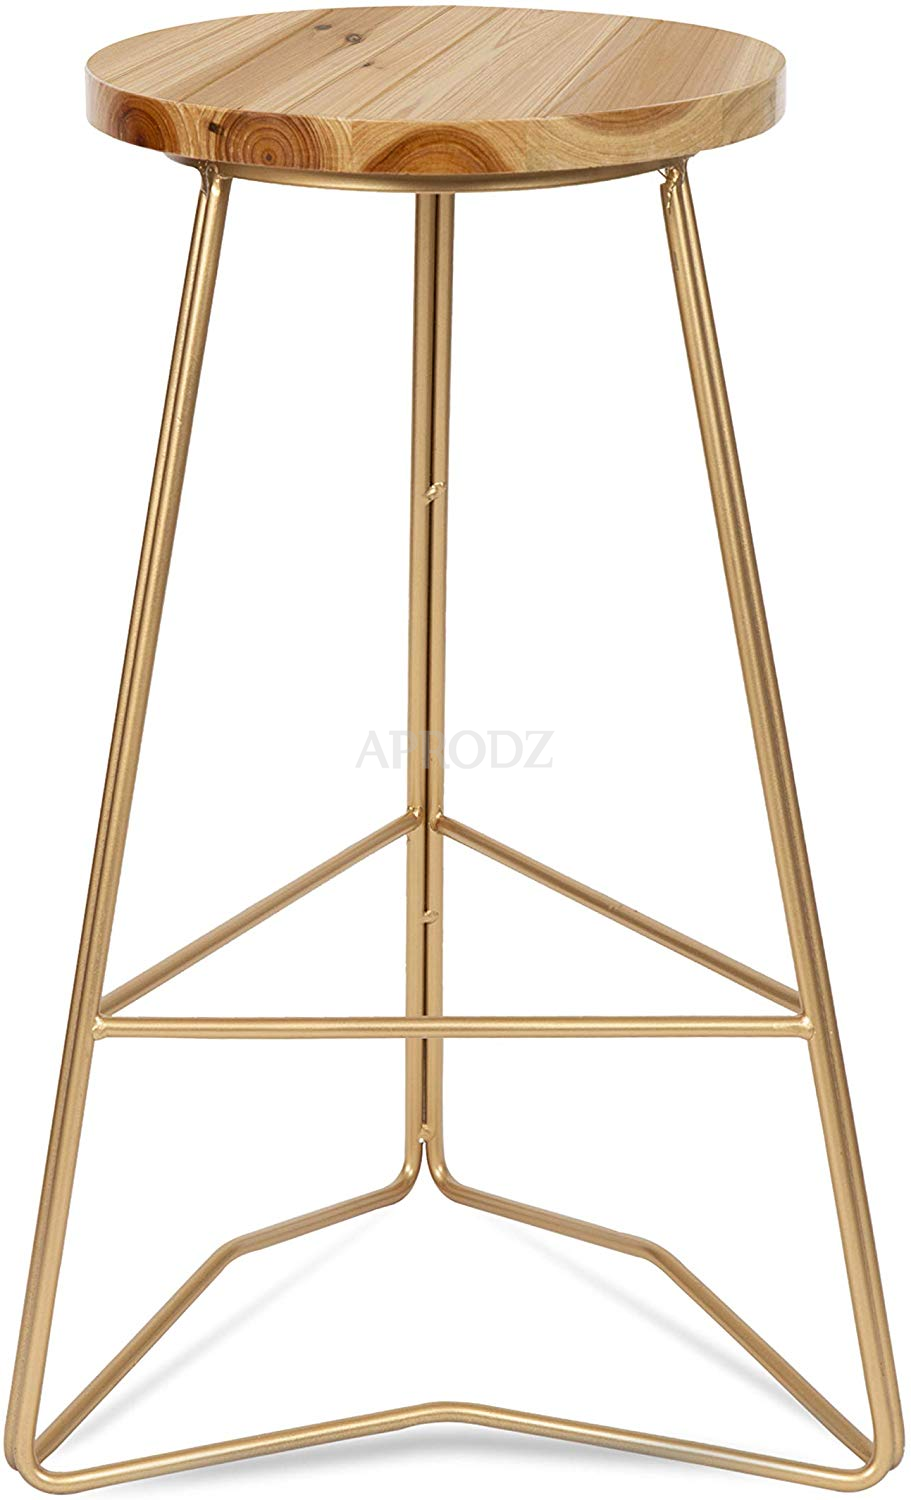 Image of: Backless Modern Counter Height Bar Stool Gold Metal Base With Natural Wood Finish Seat Aprodz